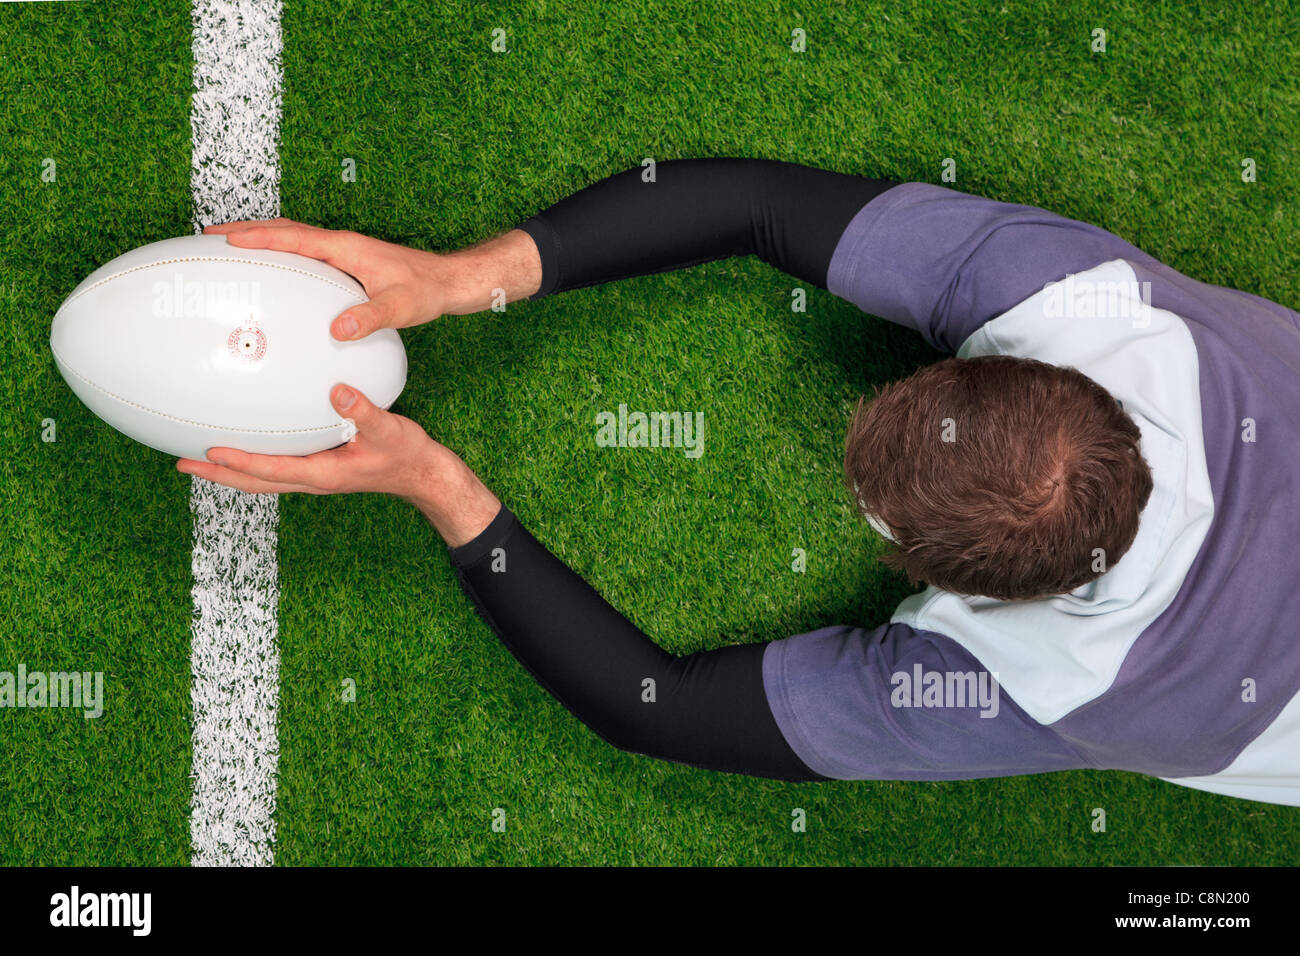 Overhead photo of a rugby player diving over the line to score a try with both hands holding the ball. - Stock Image